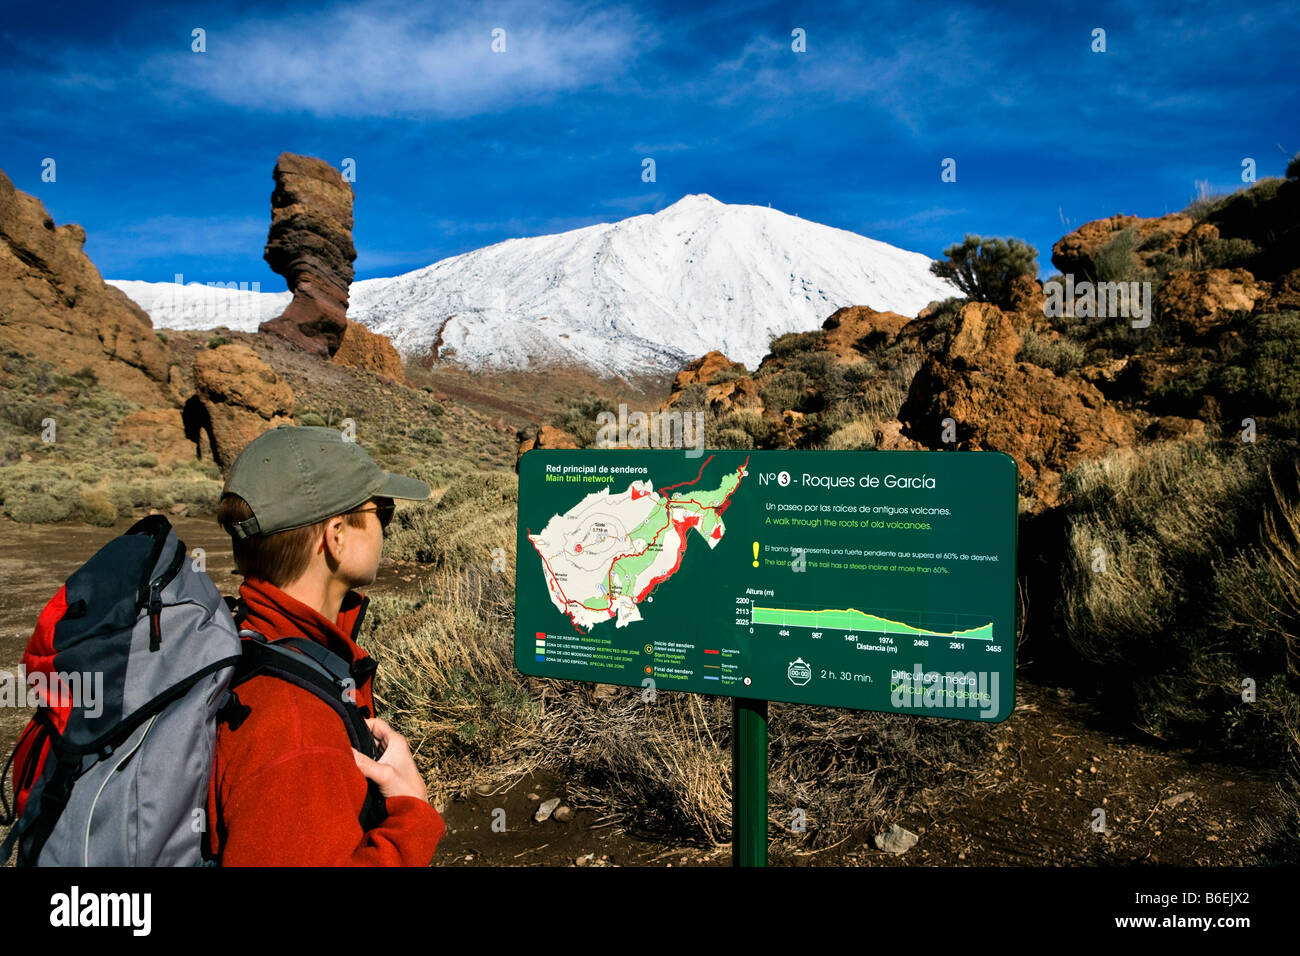 Spain. Canary Islands. Tenerife. National Park called TEIDE. Woman hiking and reading map with El Teide volcano - Stock Image